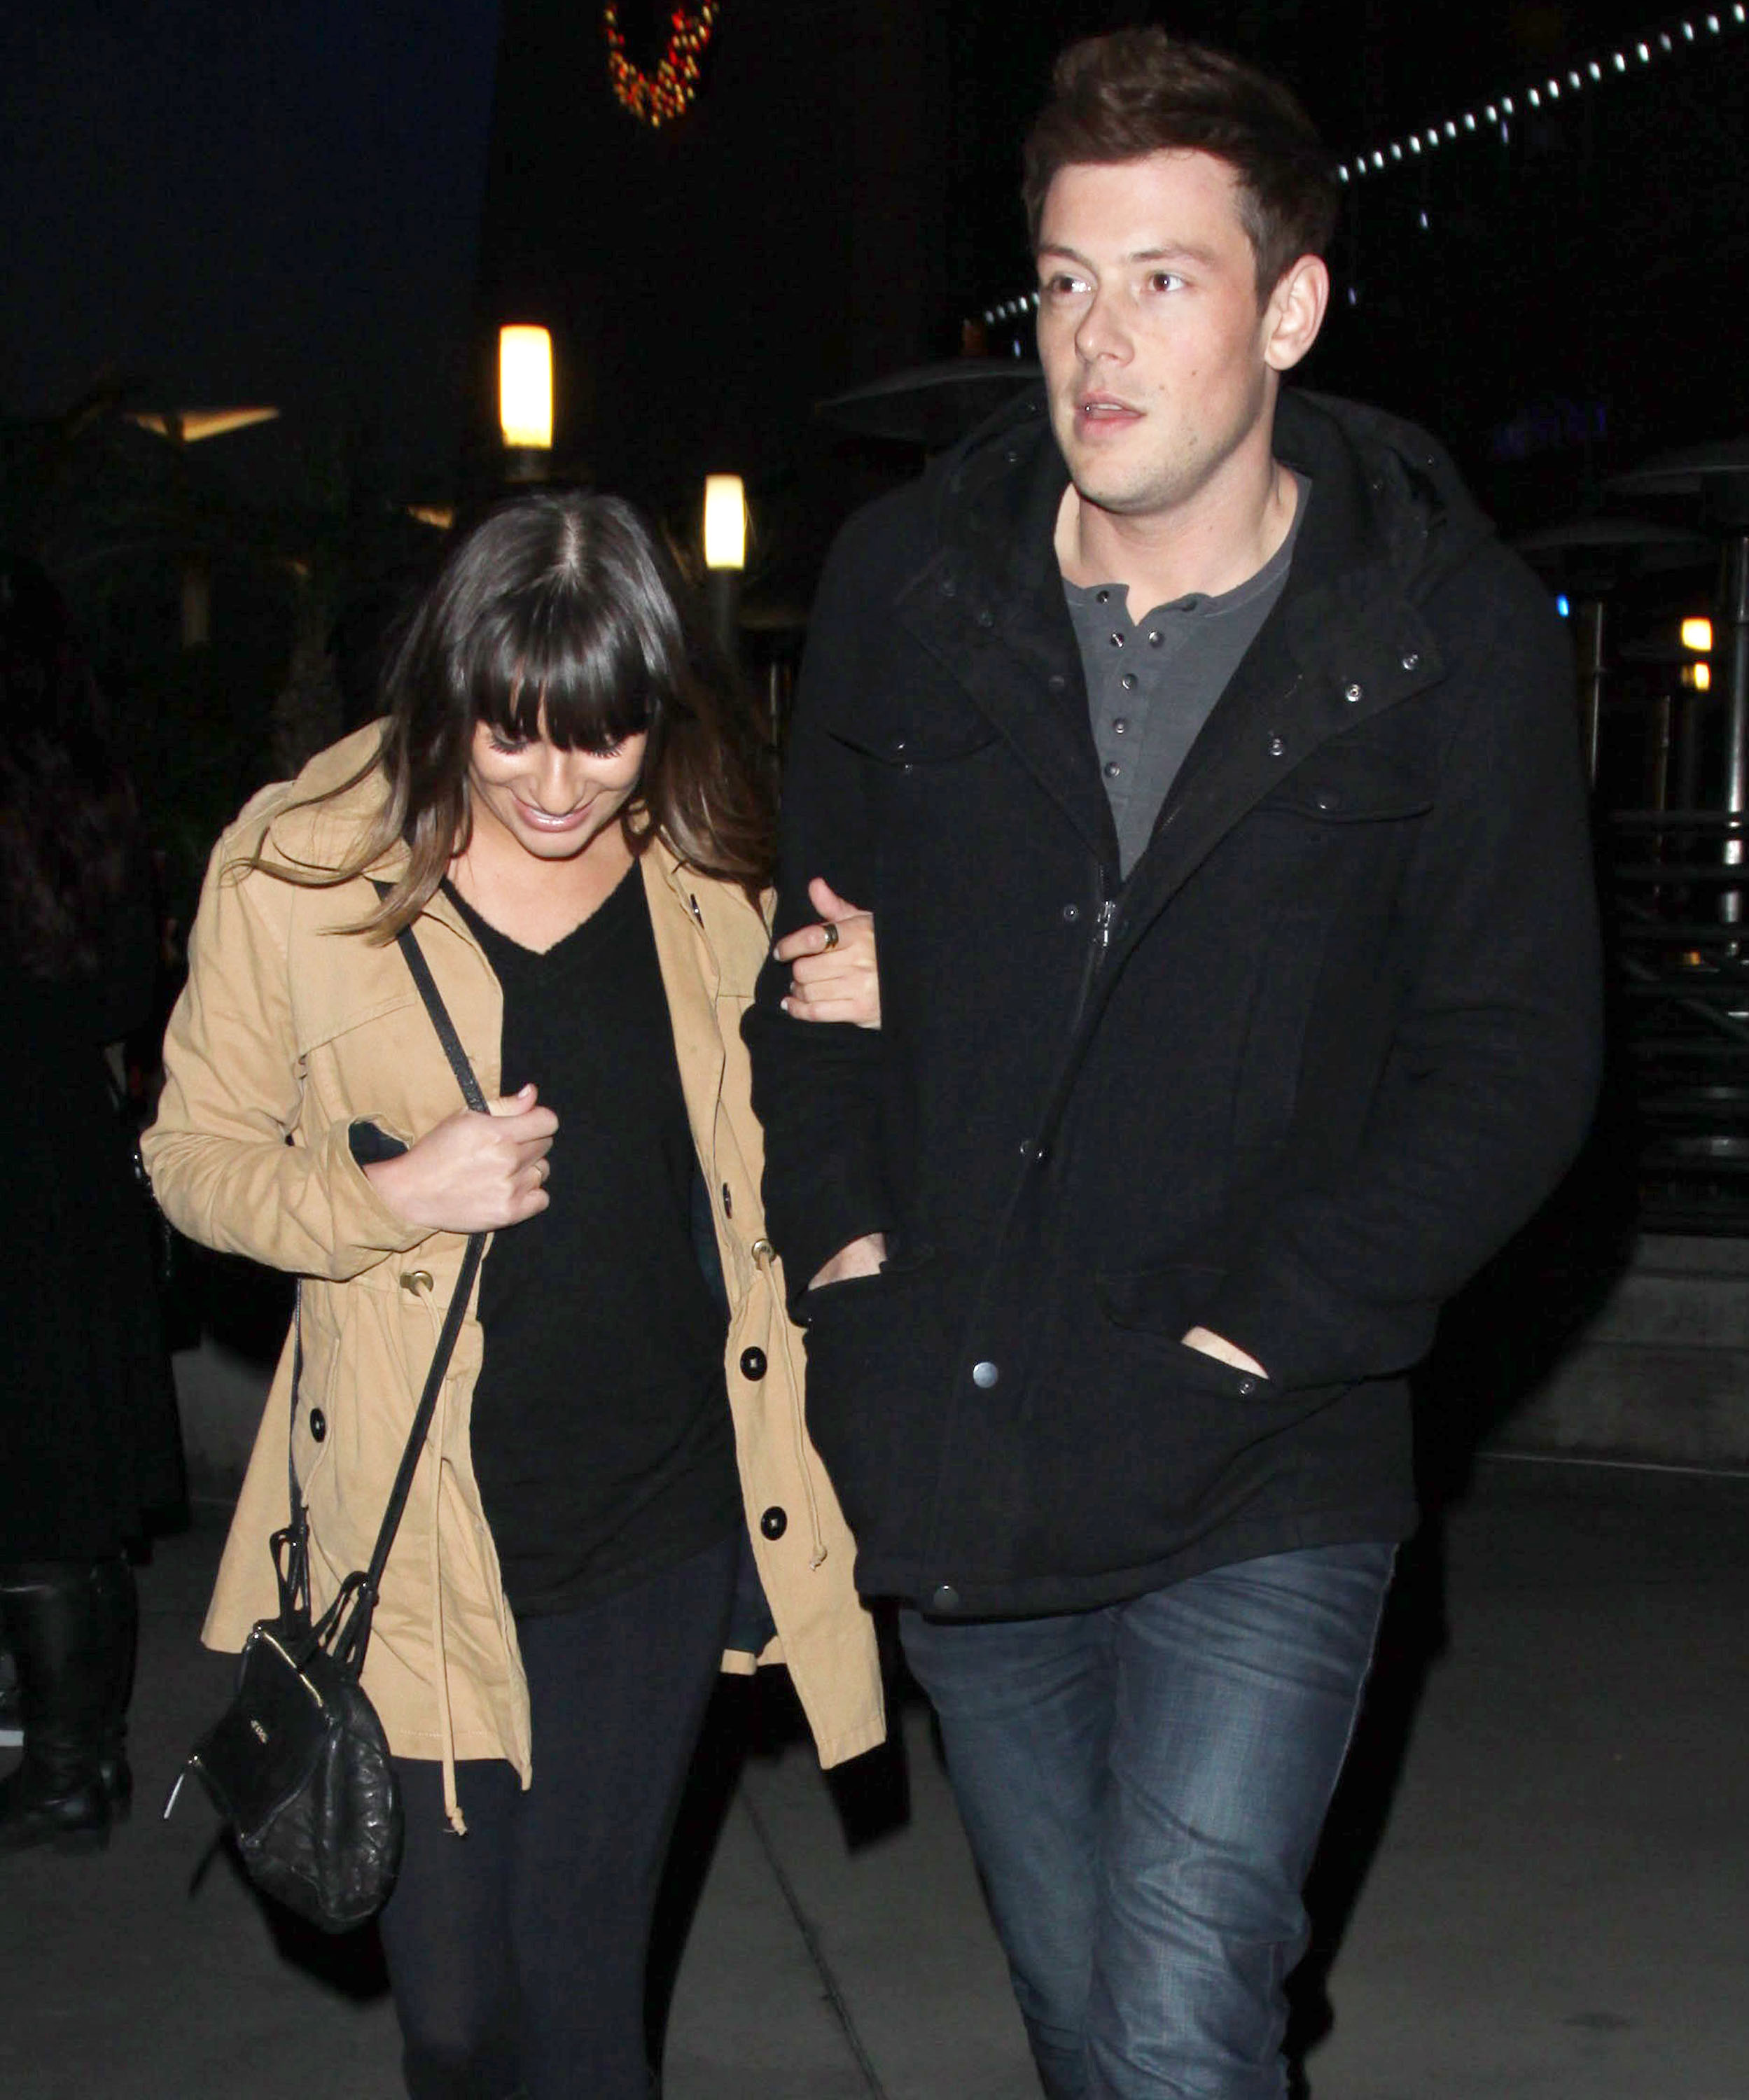 Lea Michele and Cory Monteith had a date night in Hollywood.